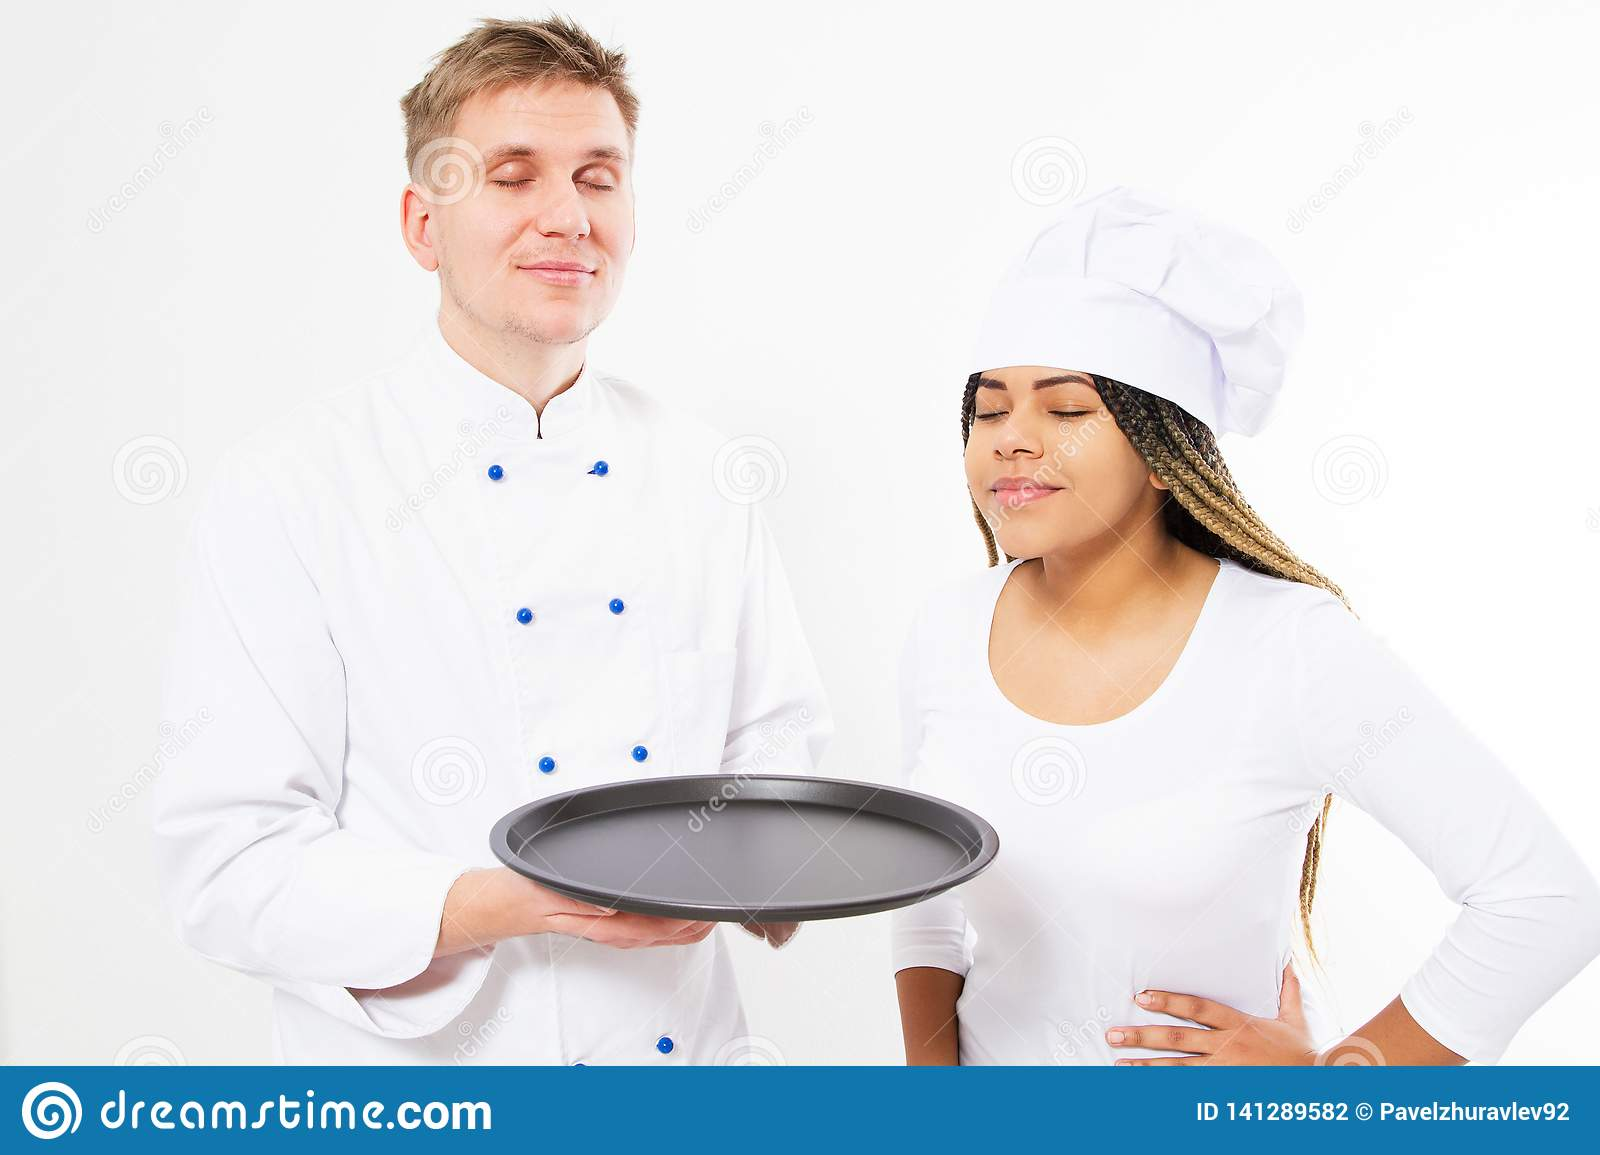 A team of chefs sniffs the pleasant aroma of something on an empty tray isolated on white